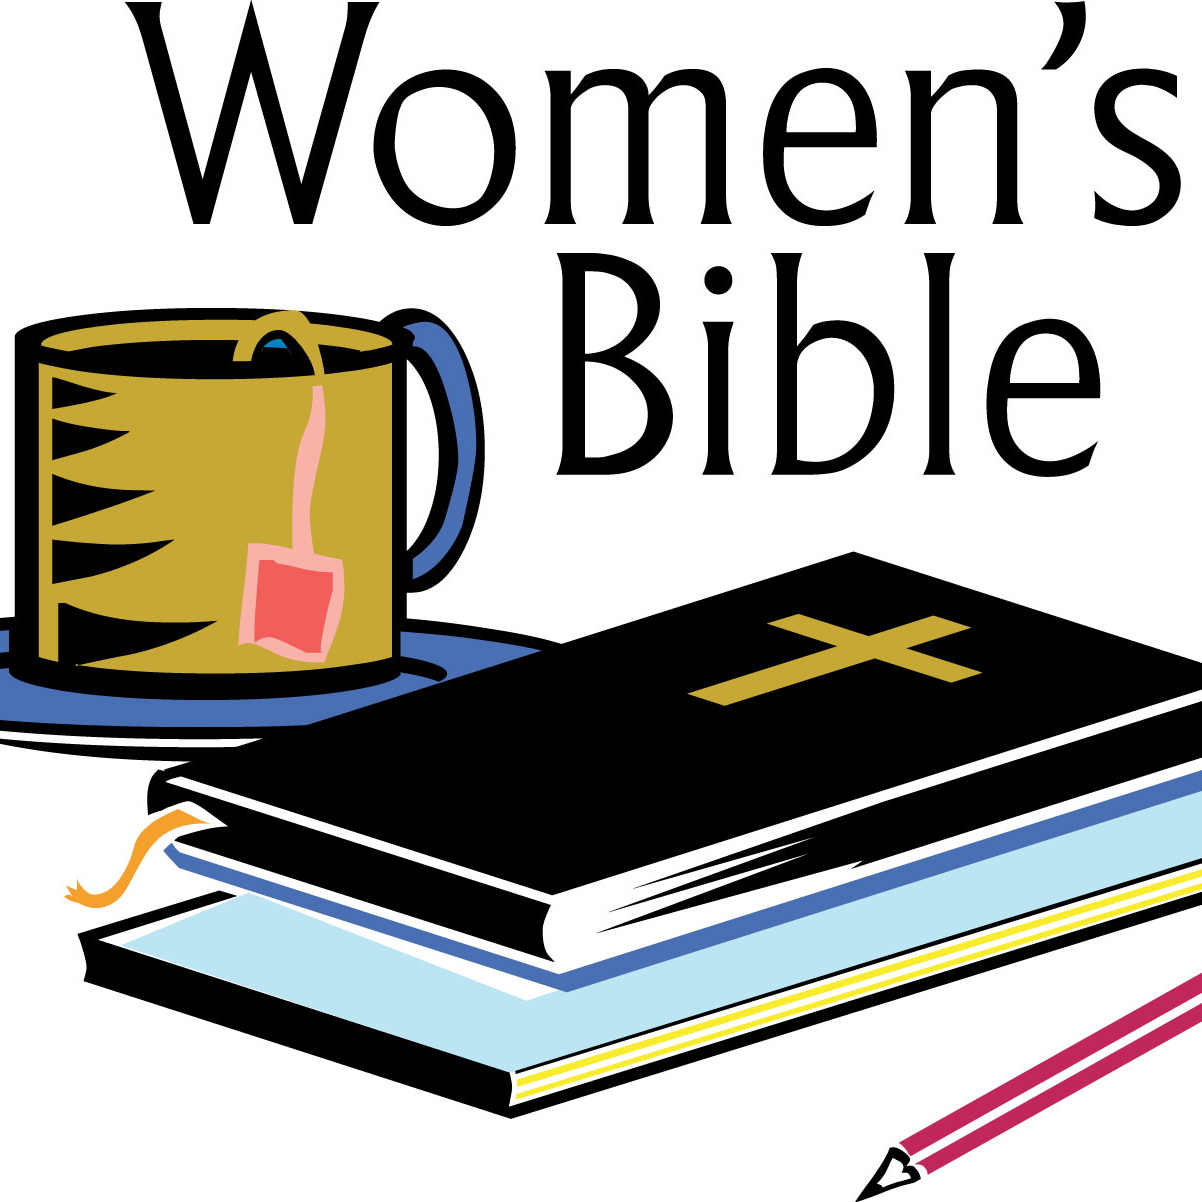 Bible study clipart 4